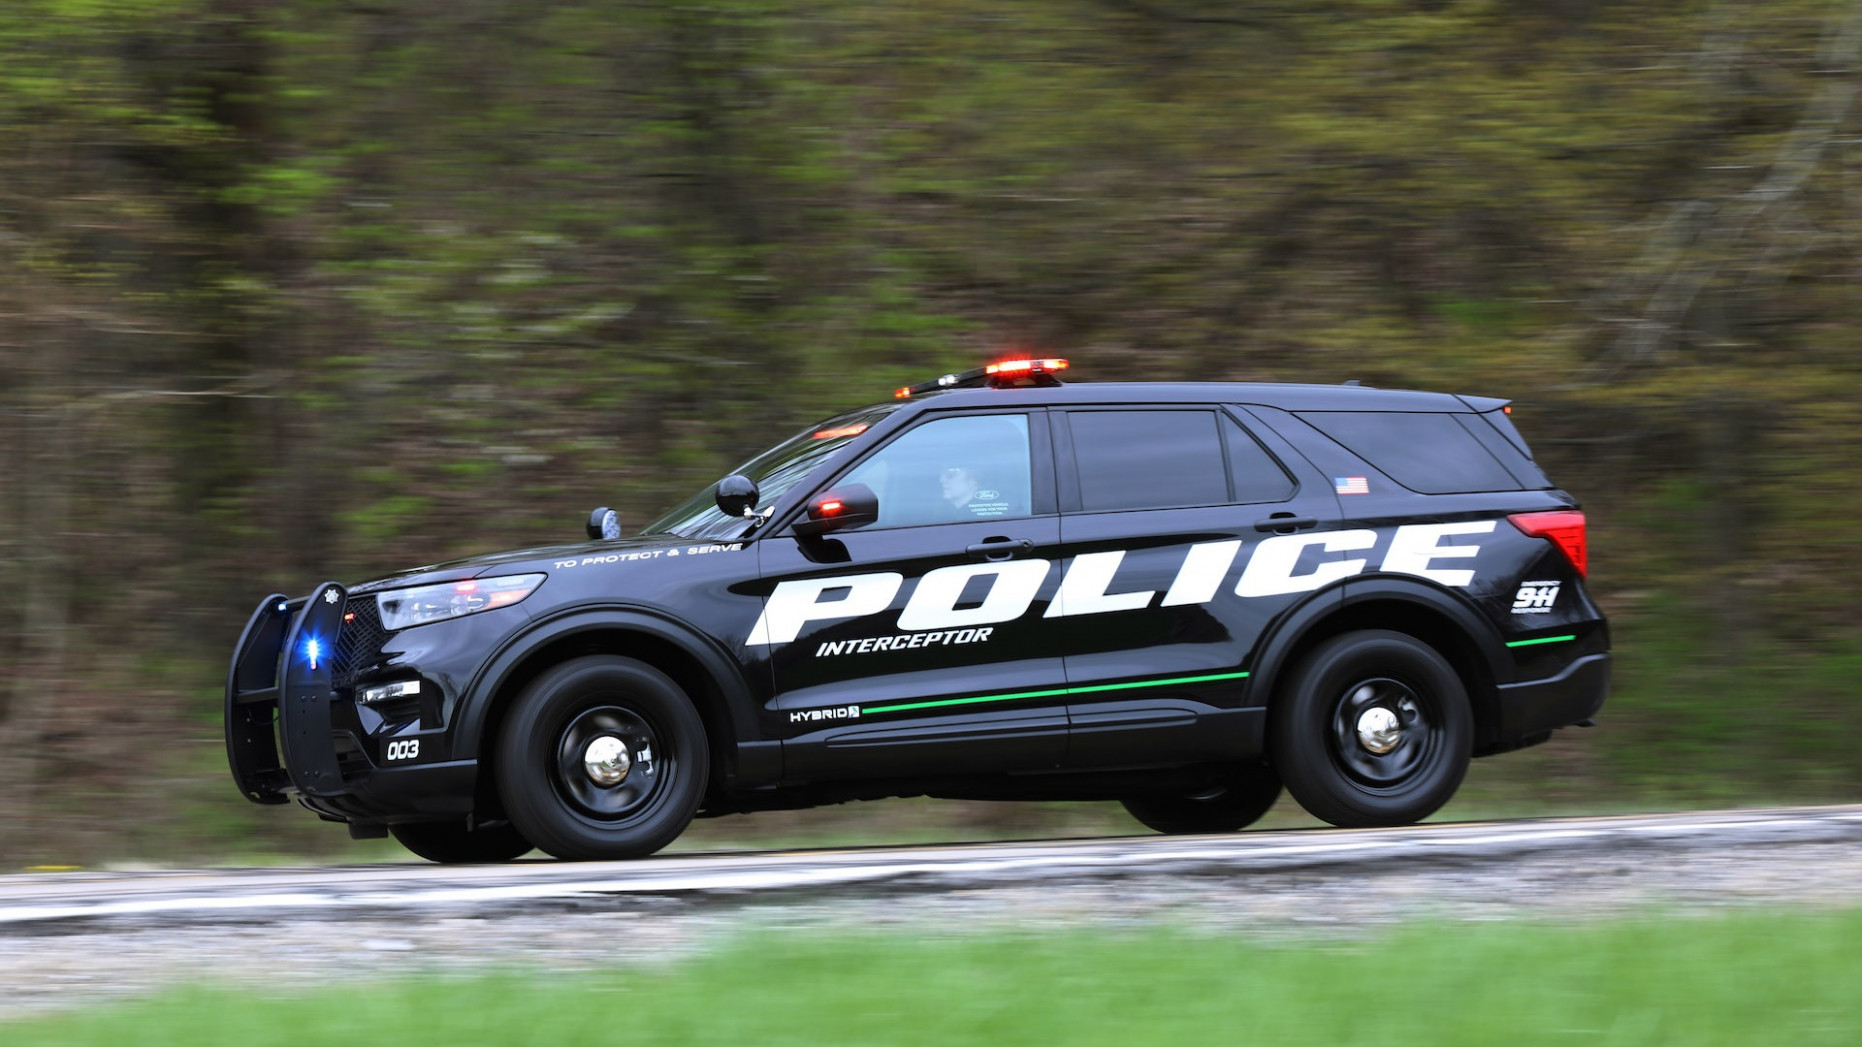 Pricing 2022 Ford Police Interceptor Utility Specs